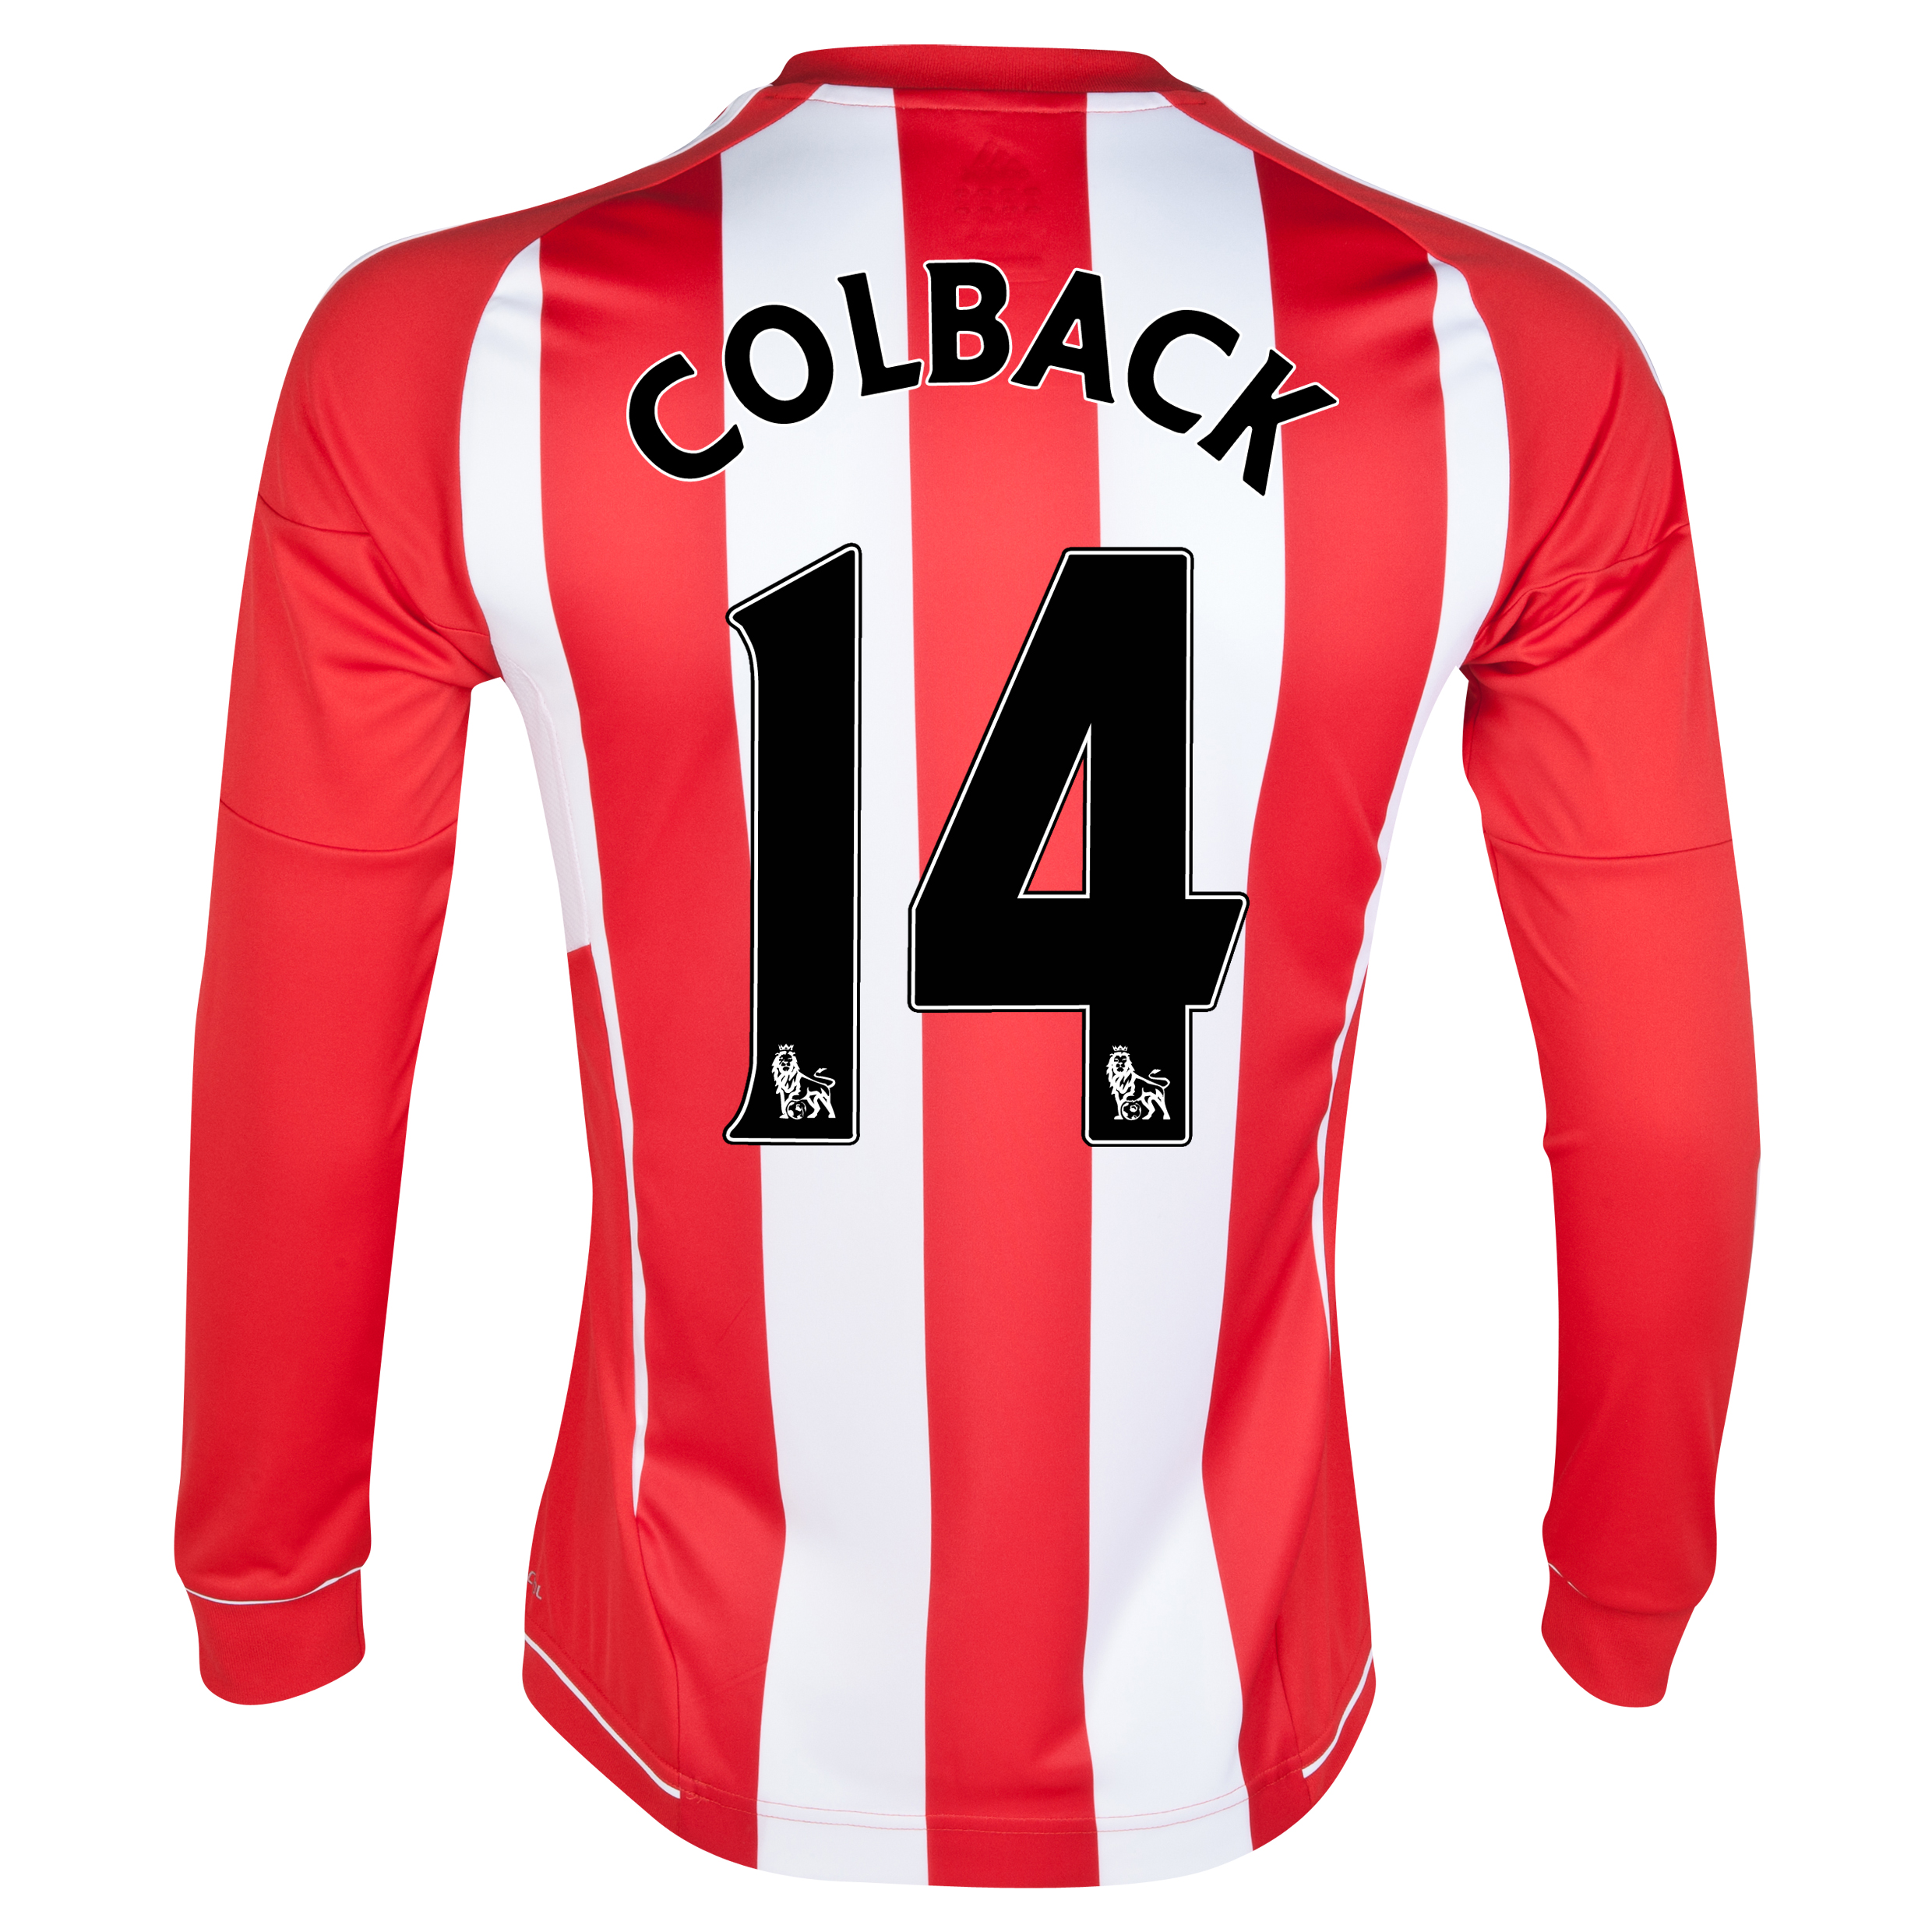 Sunderland Home Shirt 2012/13 - Long Sleeved with Colback 14 printing